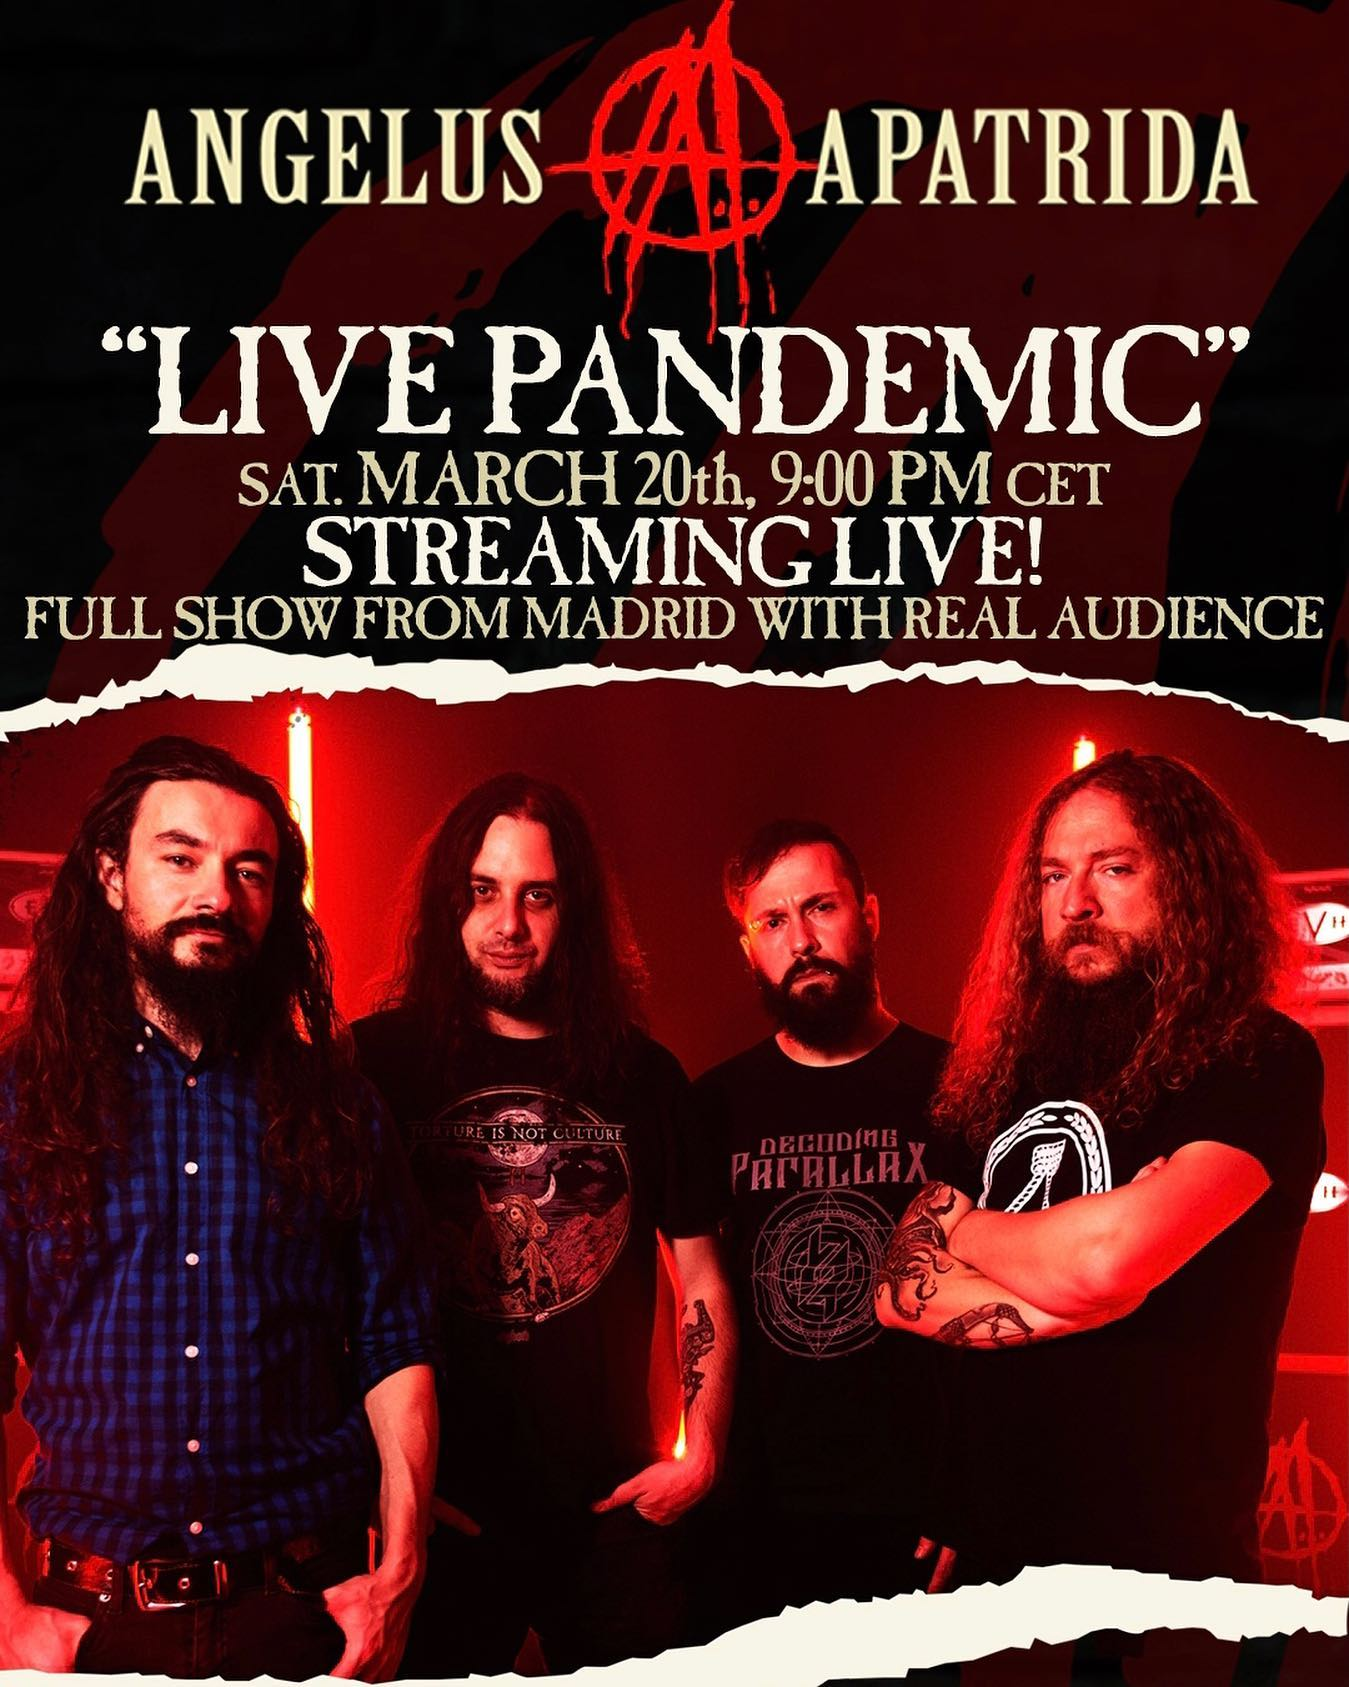 "ANGELUS APATRIDA ""Madrid Live Pandemic"" - La Riviera, Madrid, 20.03.2021"